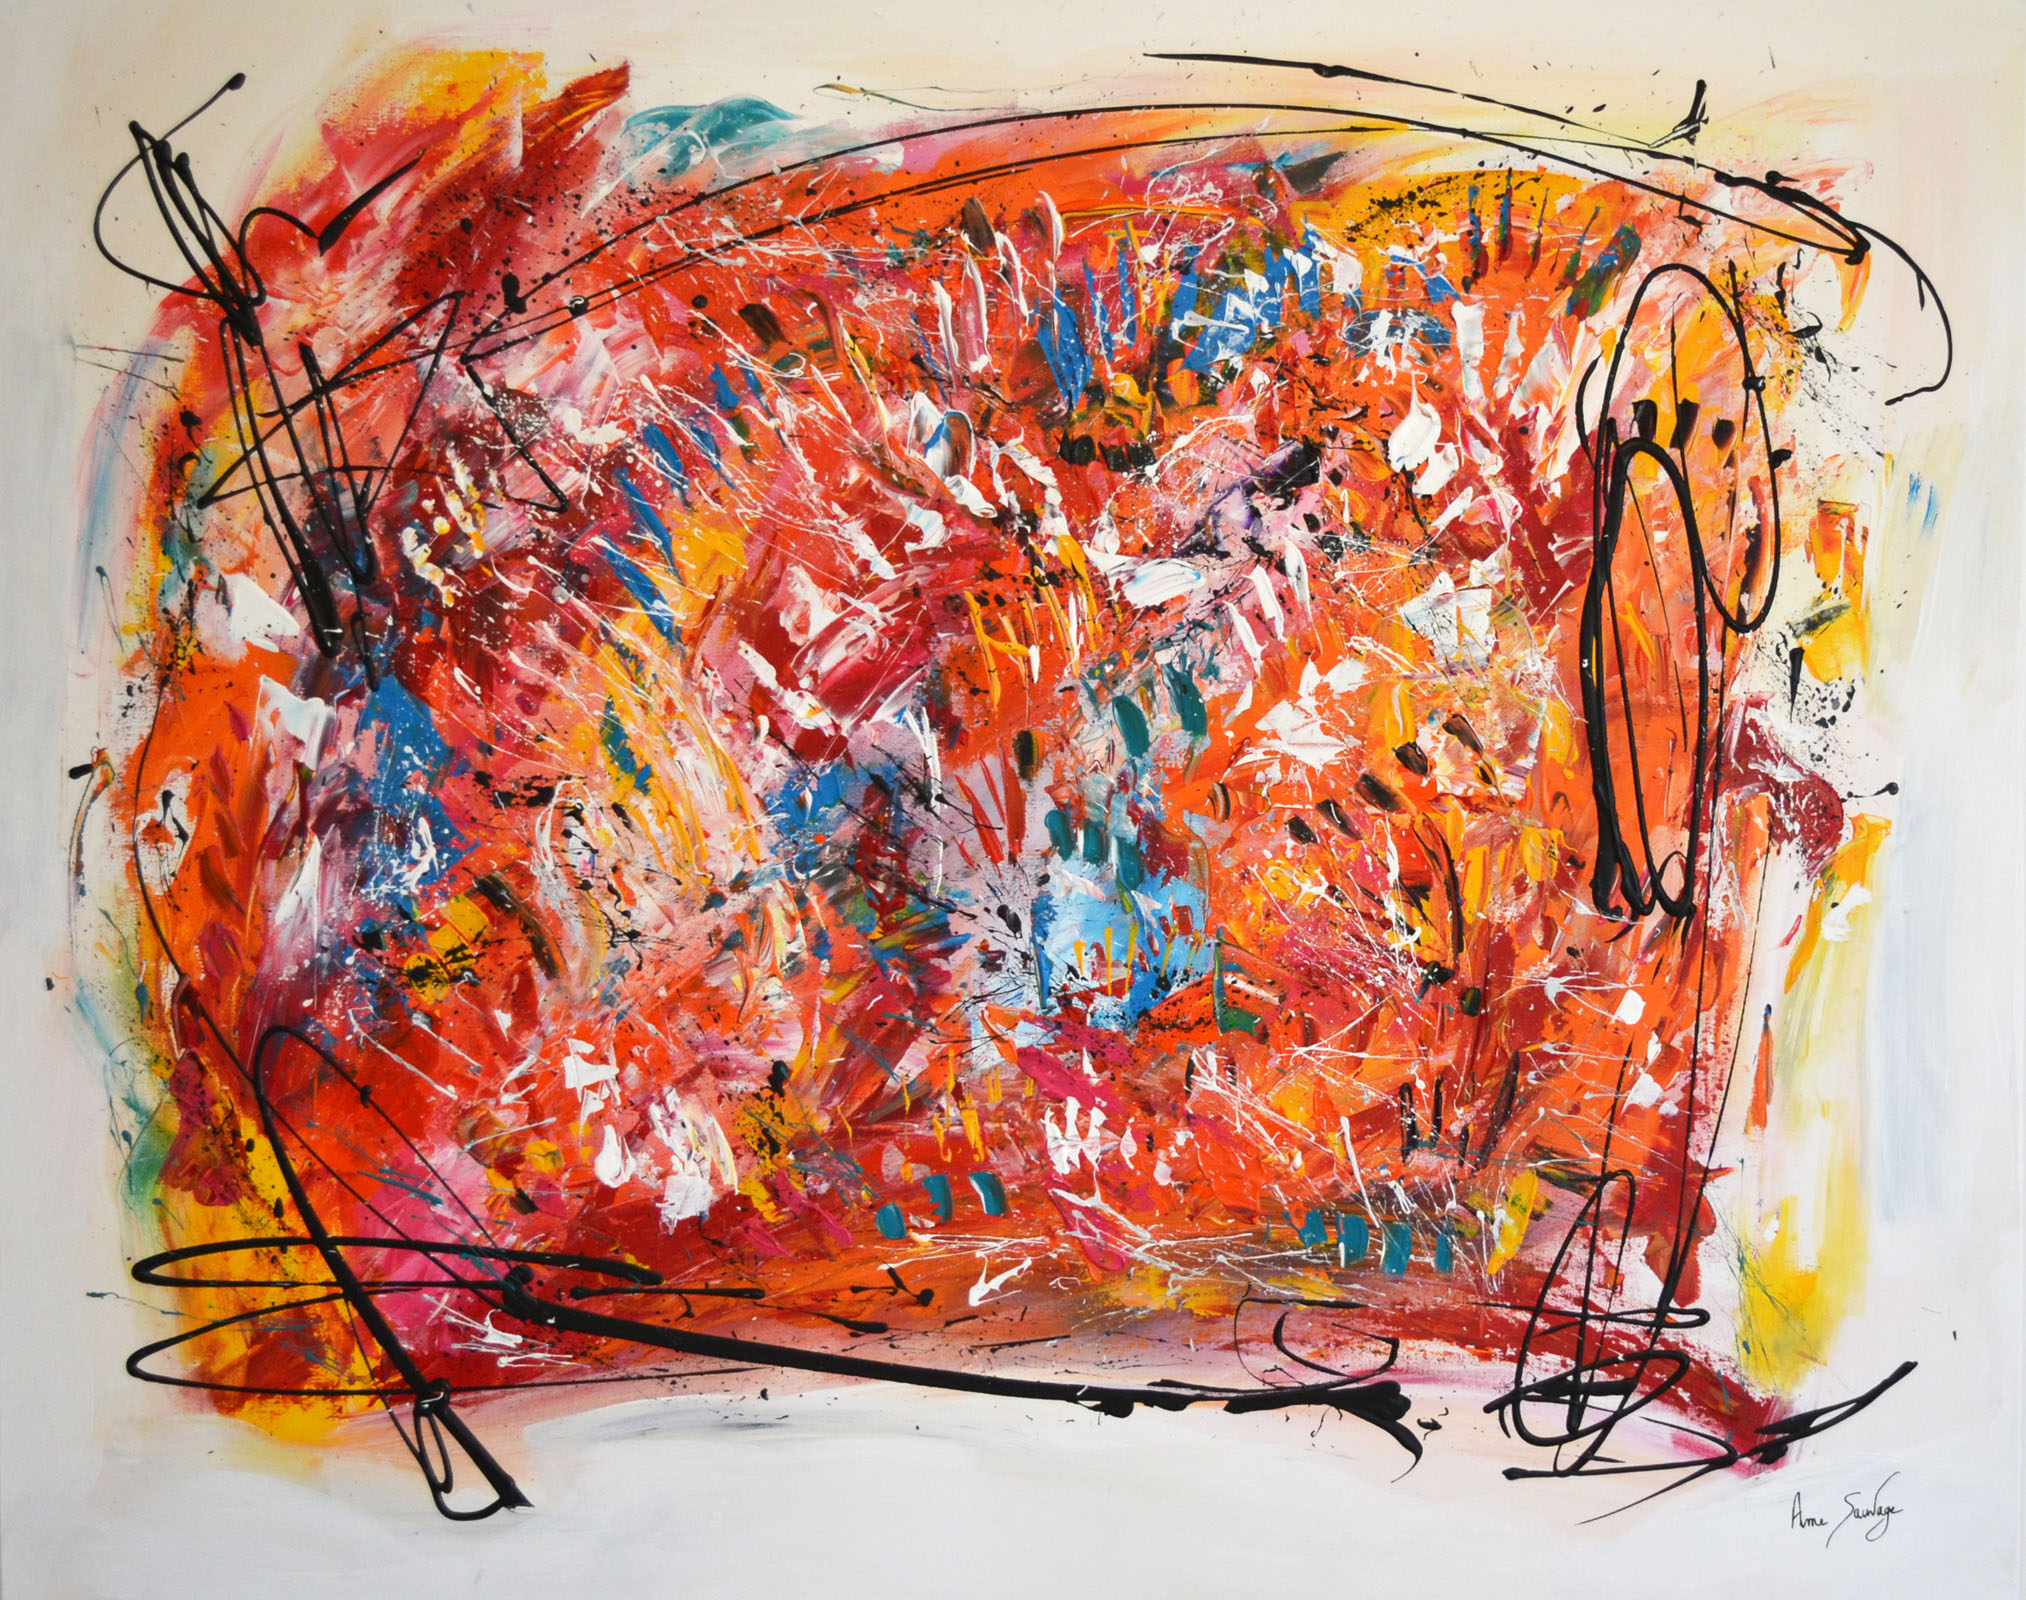 Grand tableau contemporain abstrait multicolore les ondes for Tableau contemporain abstrait